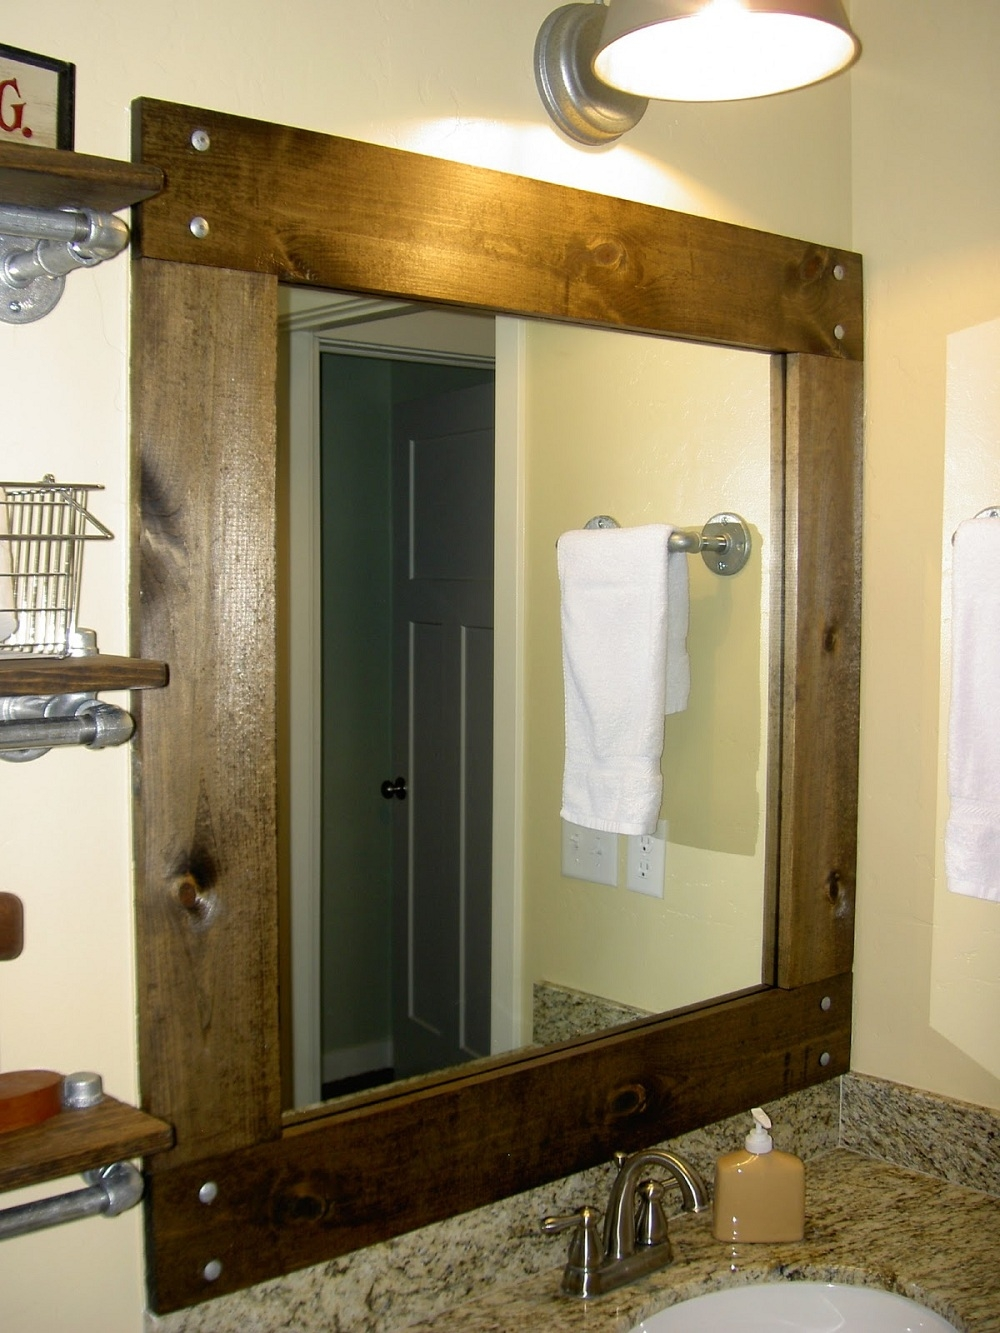 Bathroom Elegant Bathroom Decor With Large Framed Bathroom Pertaining To Oak Framed Wall Mirrors (Image 1 of 15)